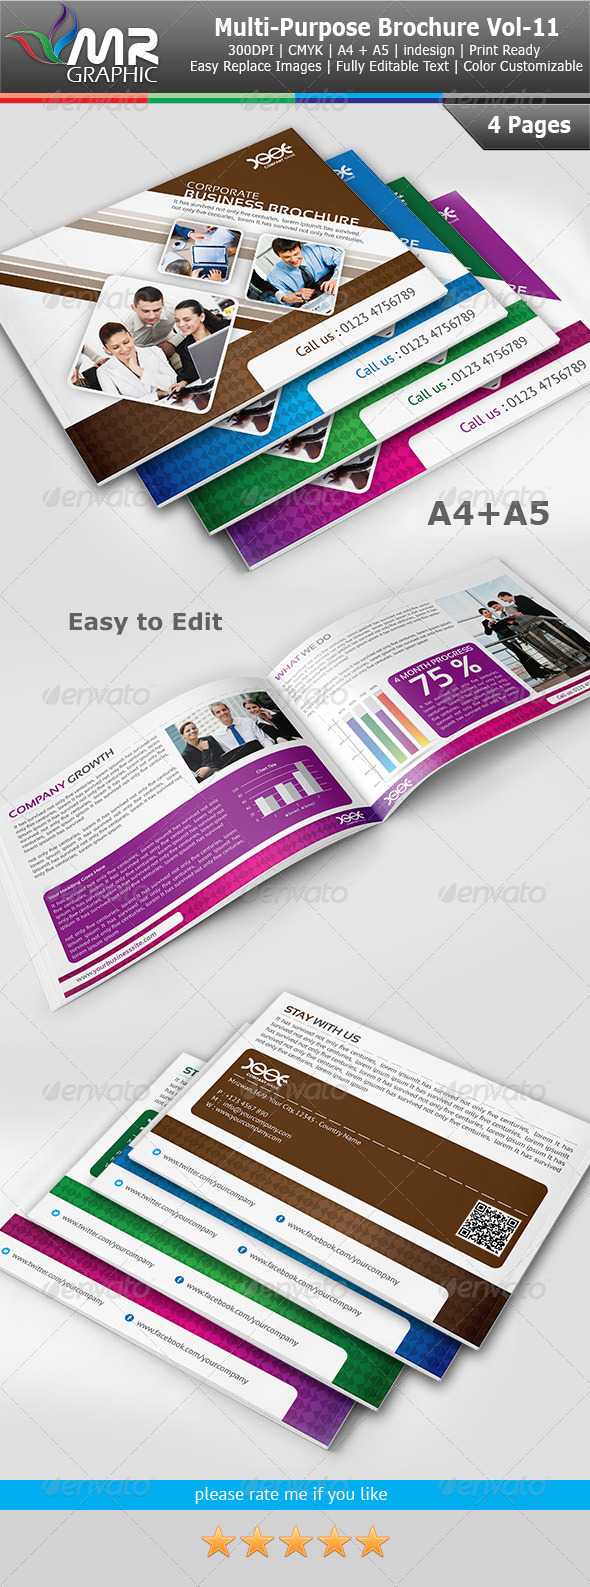 Multipurpose Business Brochure Template Vol-11 - Corporate Brochures